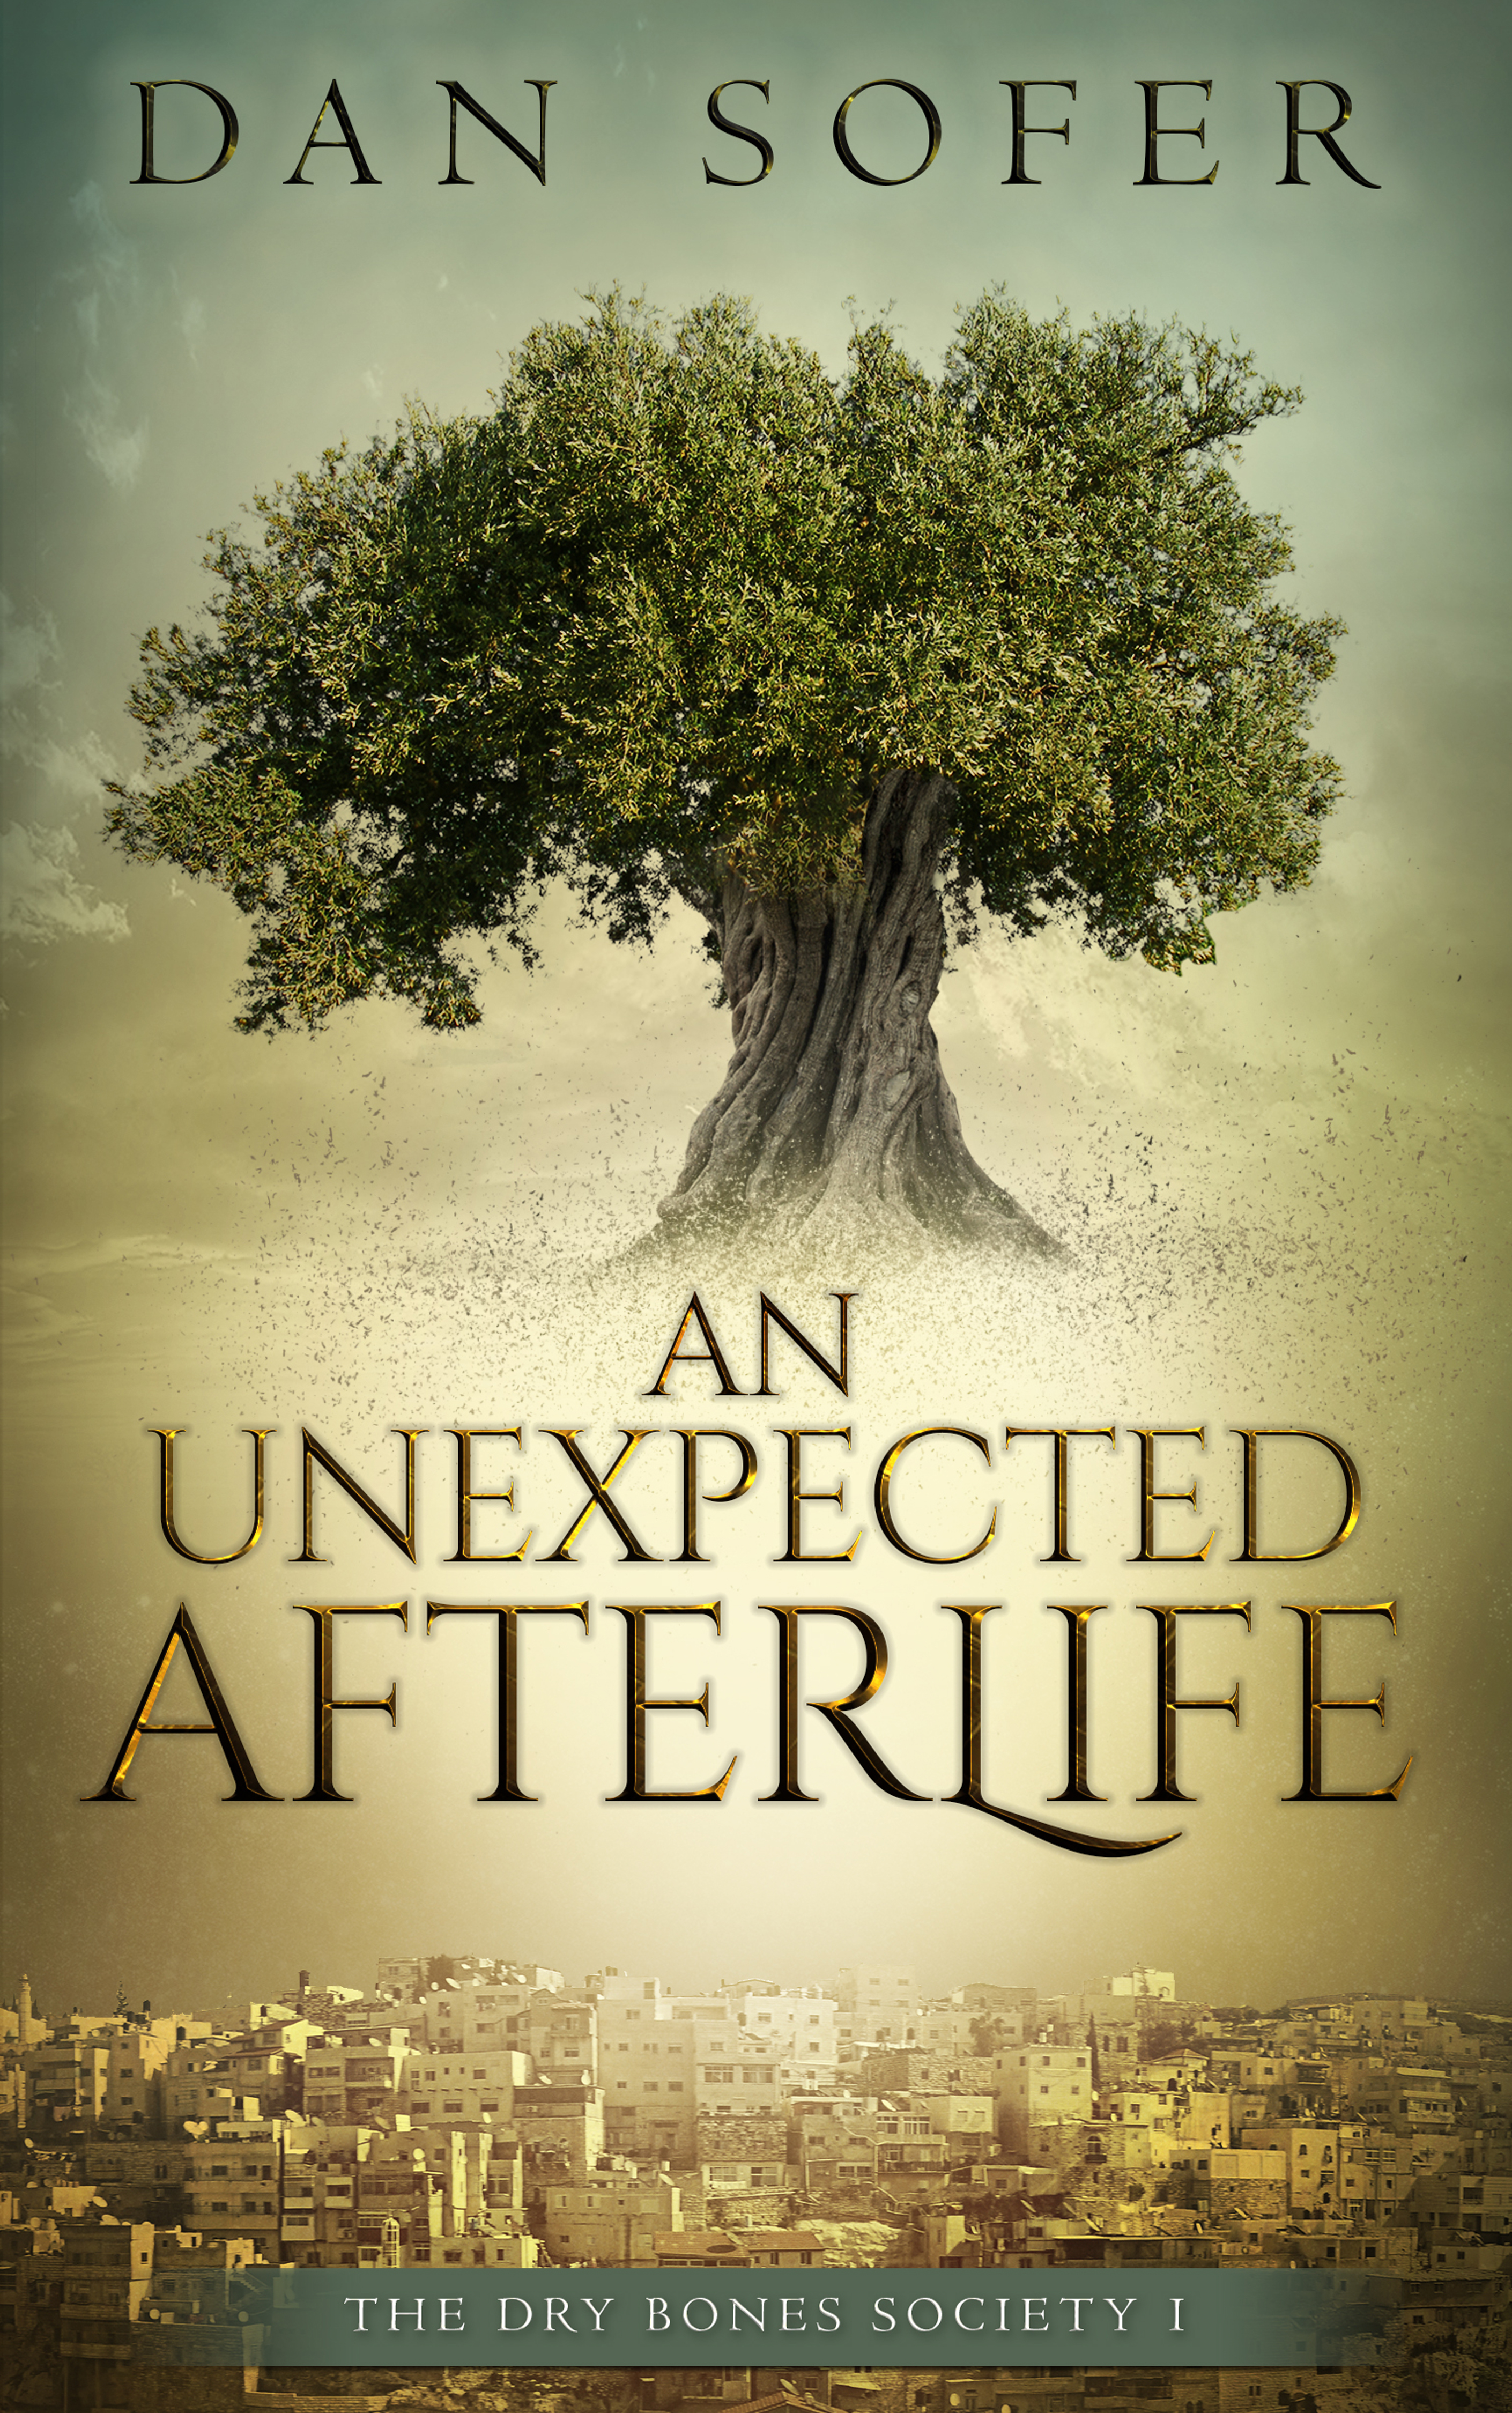 https://s3-us-west-2.amazonaws.com/sharedbooks/media/An-Unexpected-Afterlife-Cover.jpg